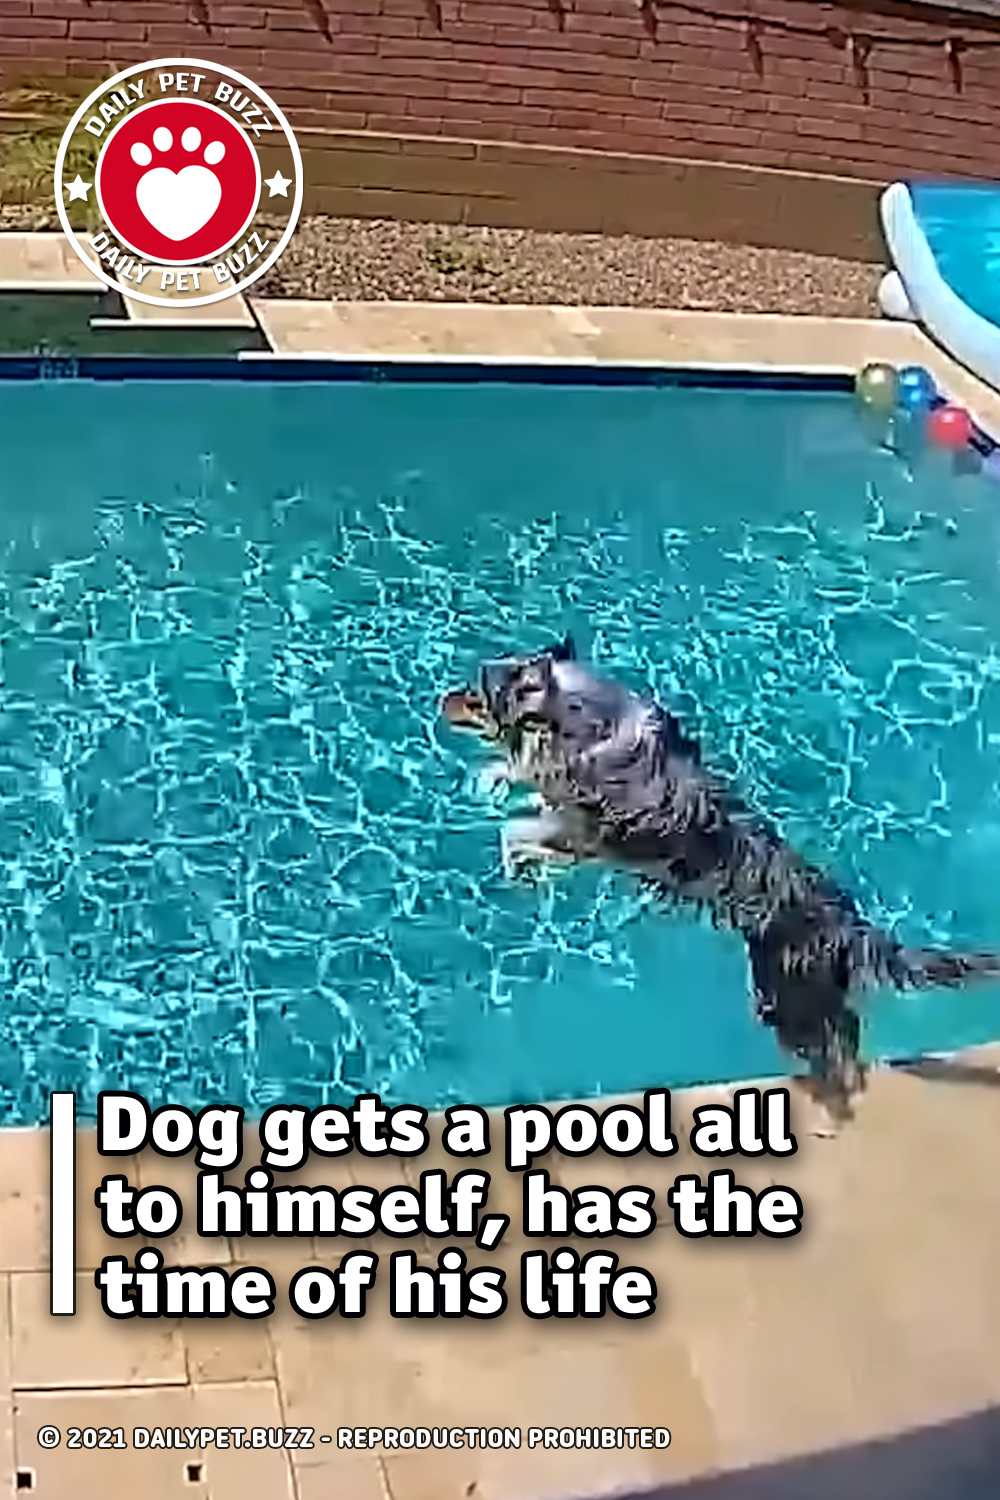 Dog gets a pool all to himself, has the time of his life